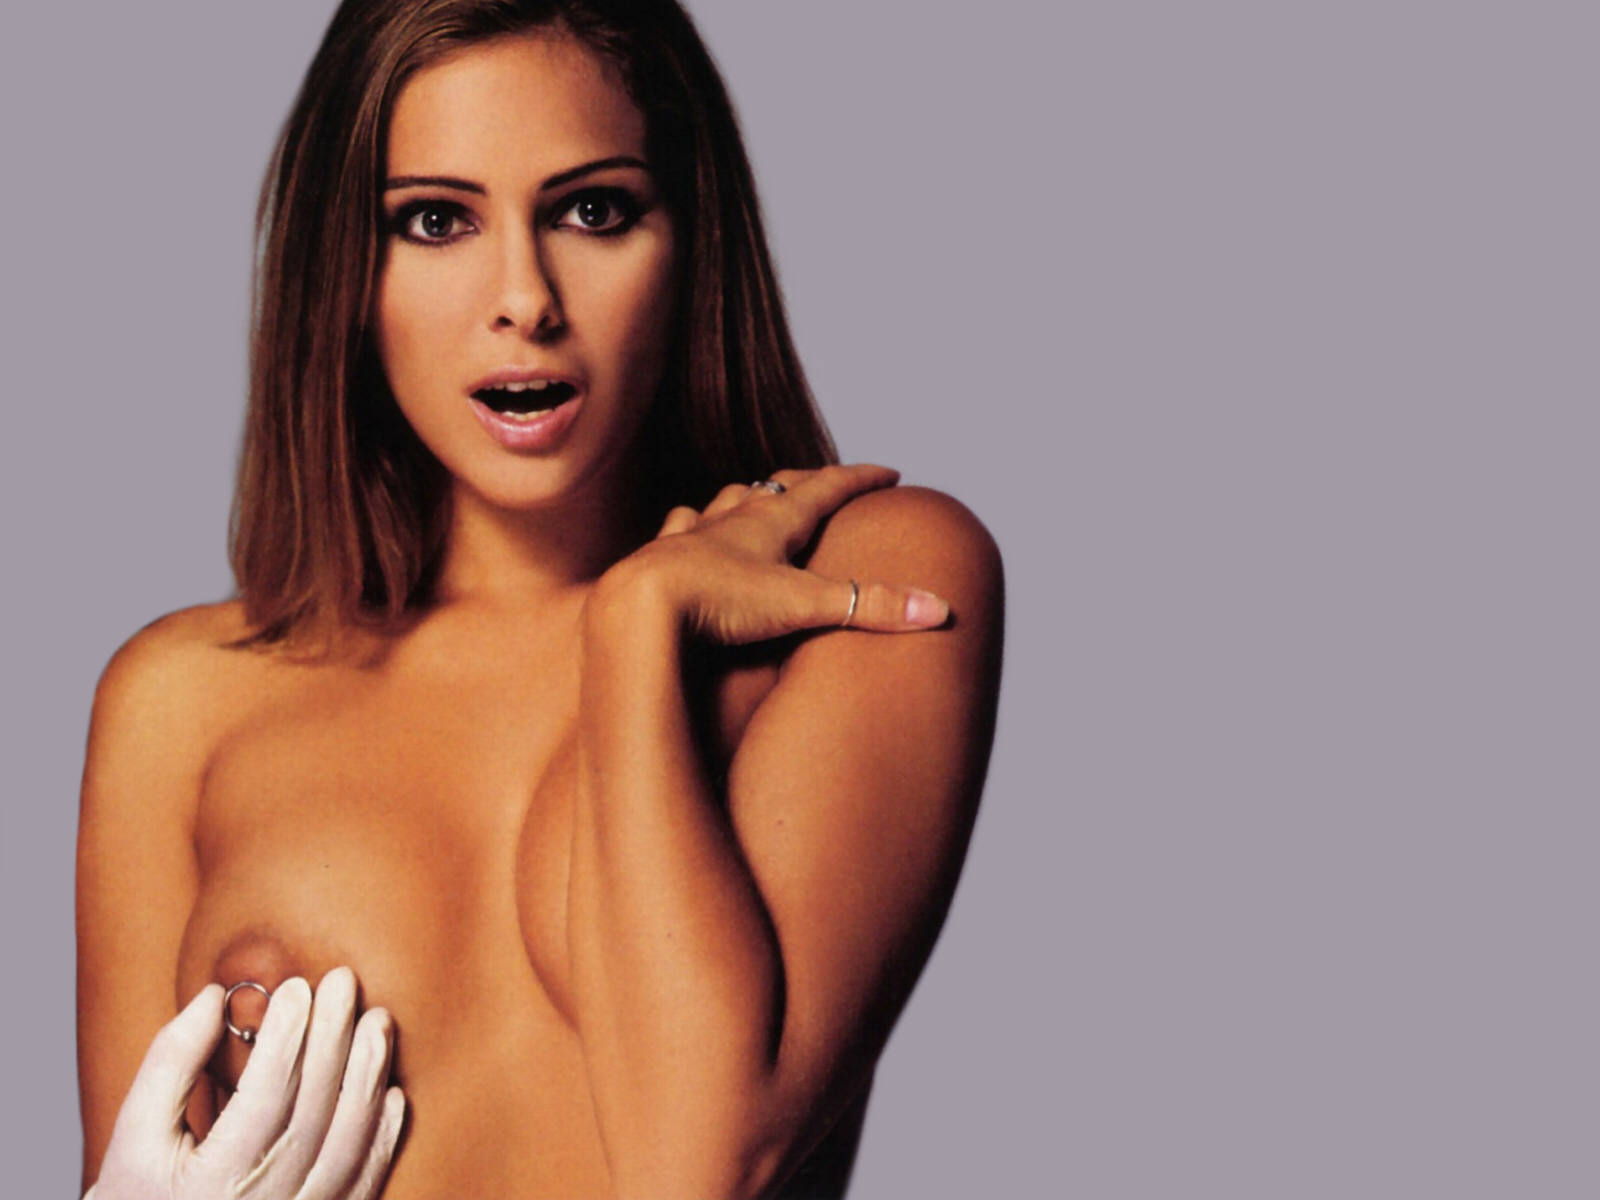 Clara Morgane posing nude for December 2010 issue of French FHM 'zine